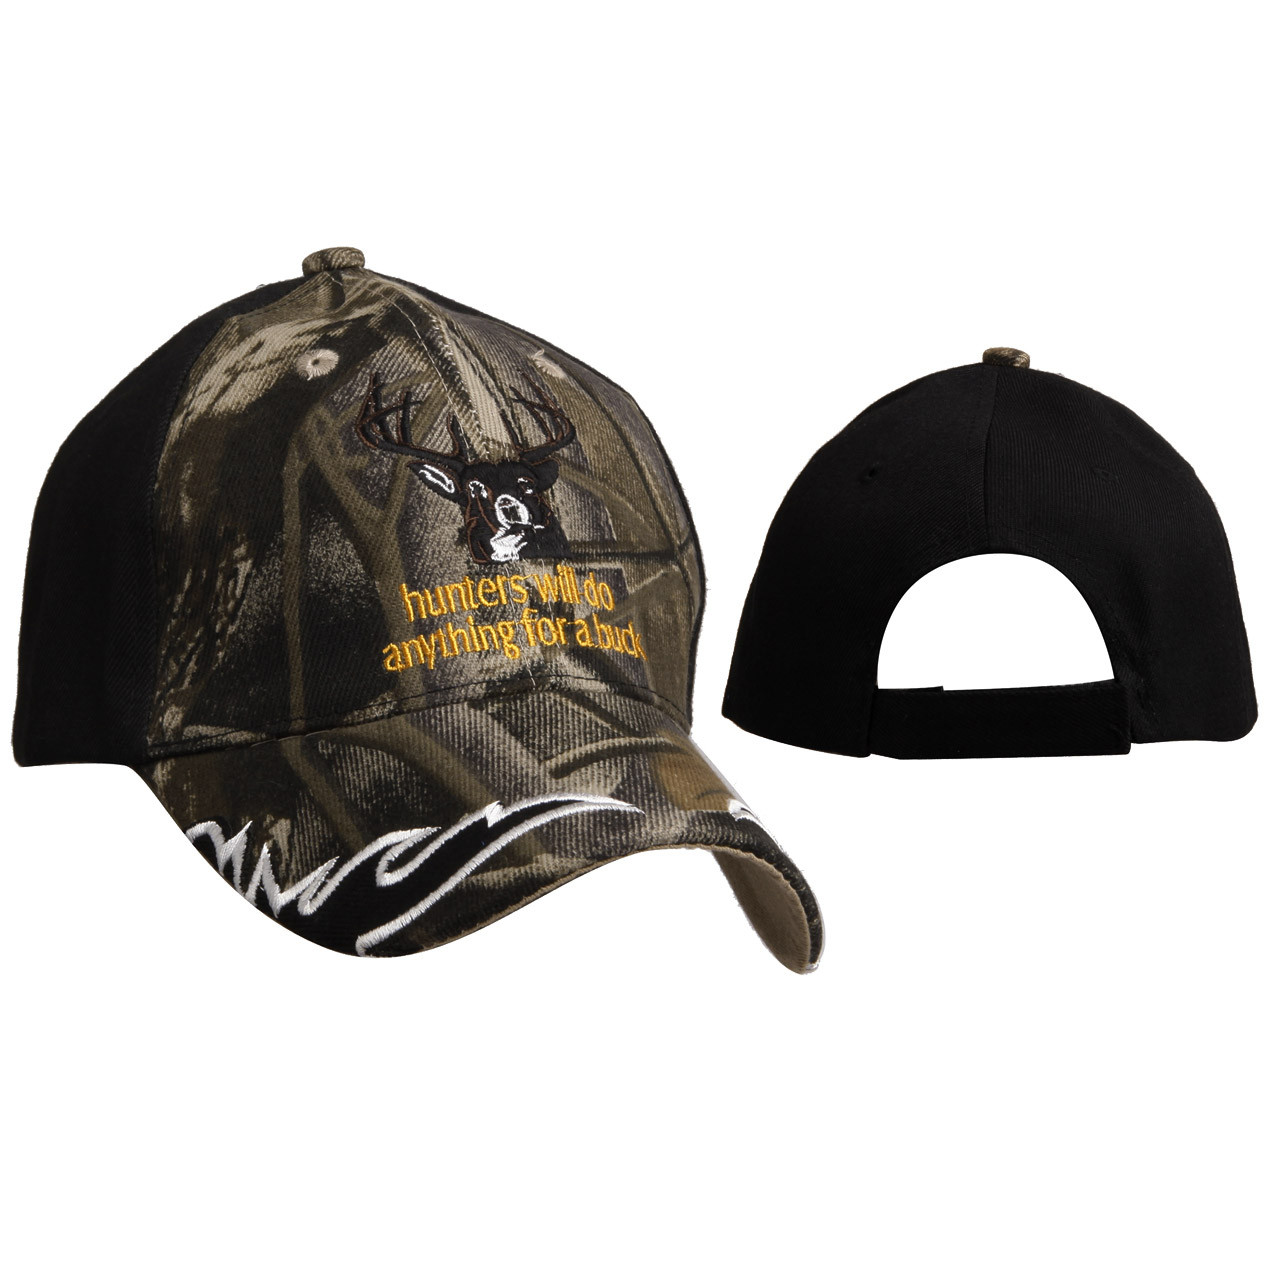 """""""Hunters will do anything for a buck"""" Wholesale Baseball Cap C6009"""